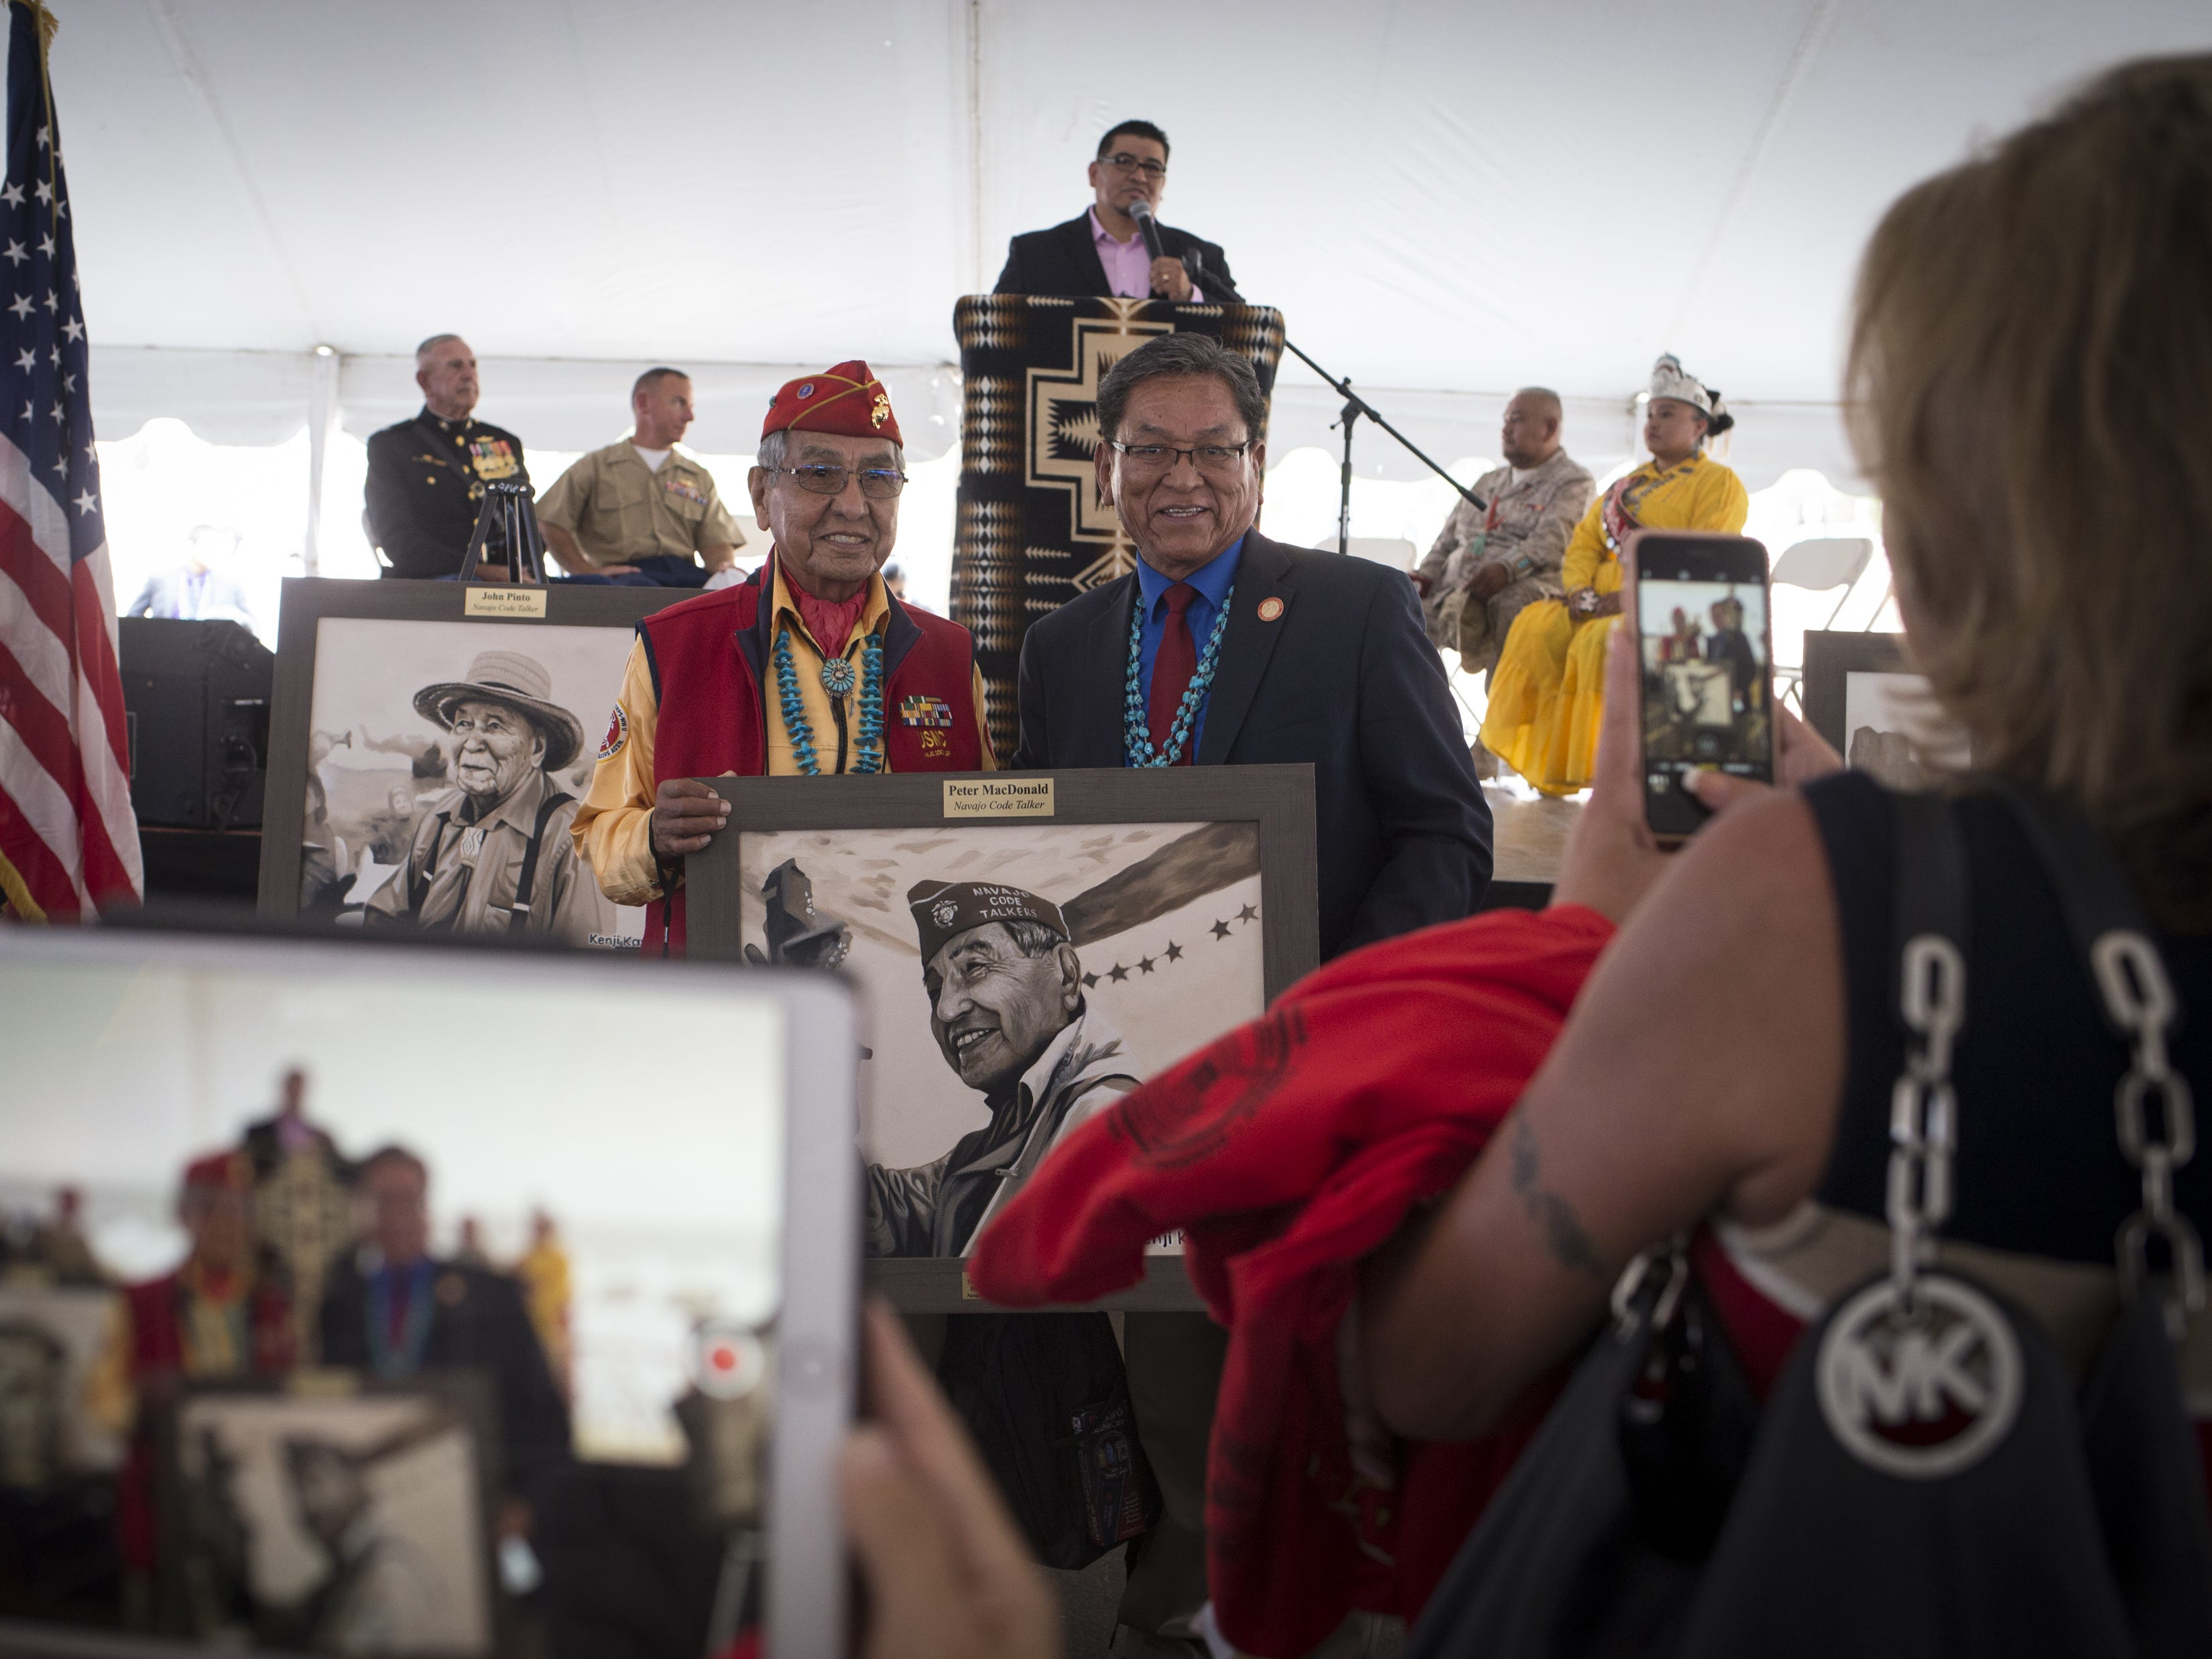 Navajo Code Talker Peter MacDonald (left) is photographed with Navajo Nation President Russell Begaye (right) during the Navajo Nation Code Talkers Day ceremony on Aug. 14, 2018, at the Veterans Memorial Park in Window Rock.